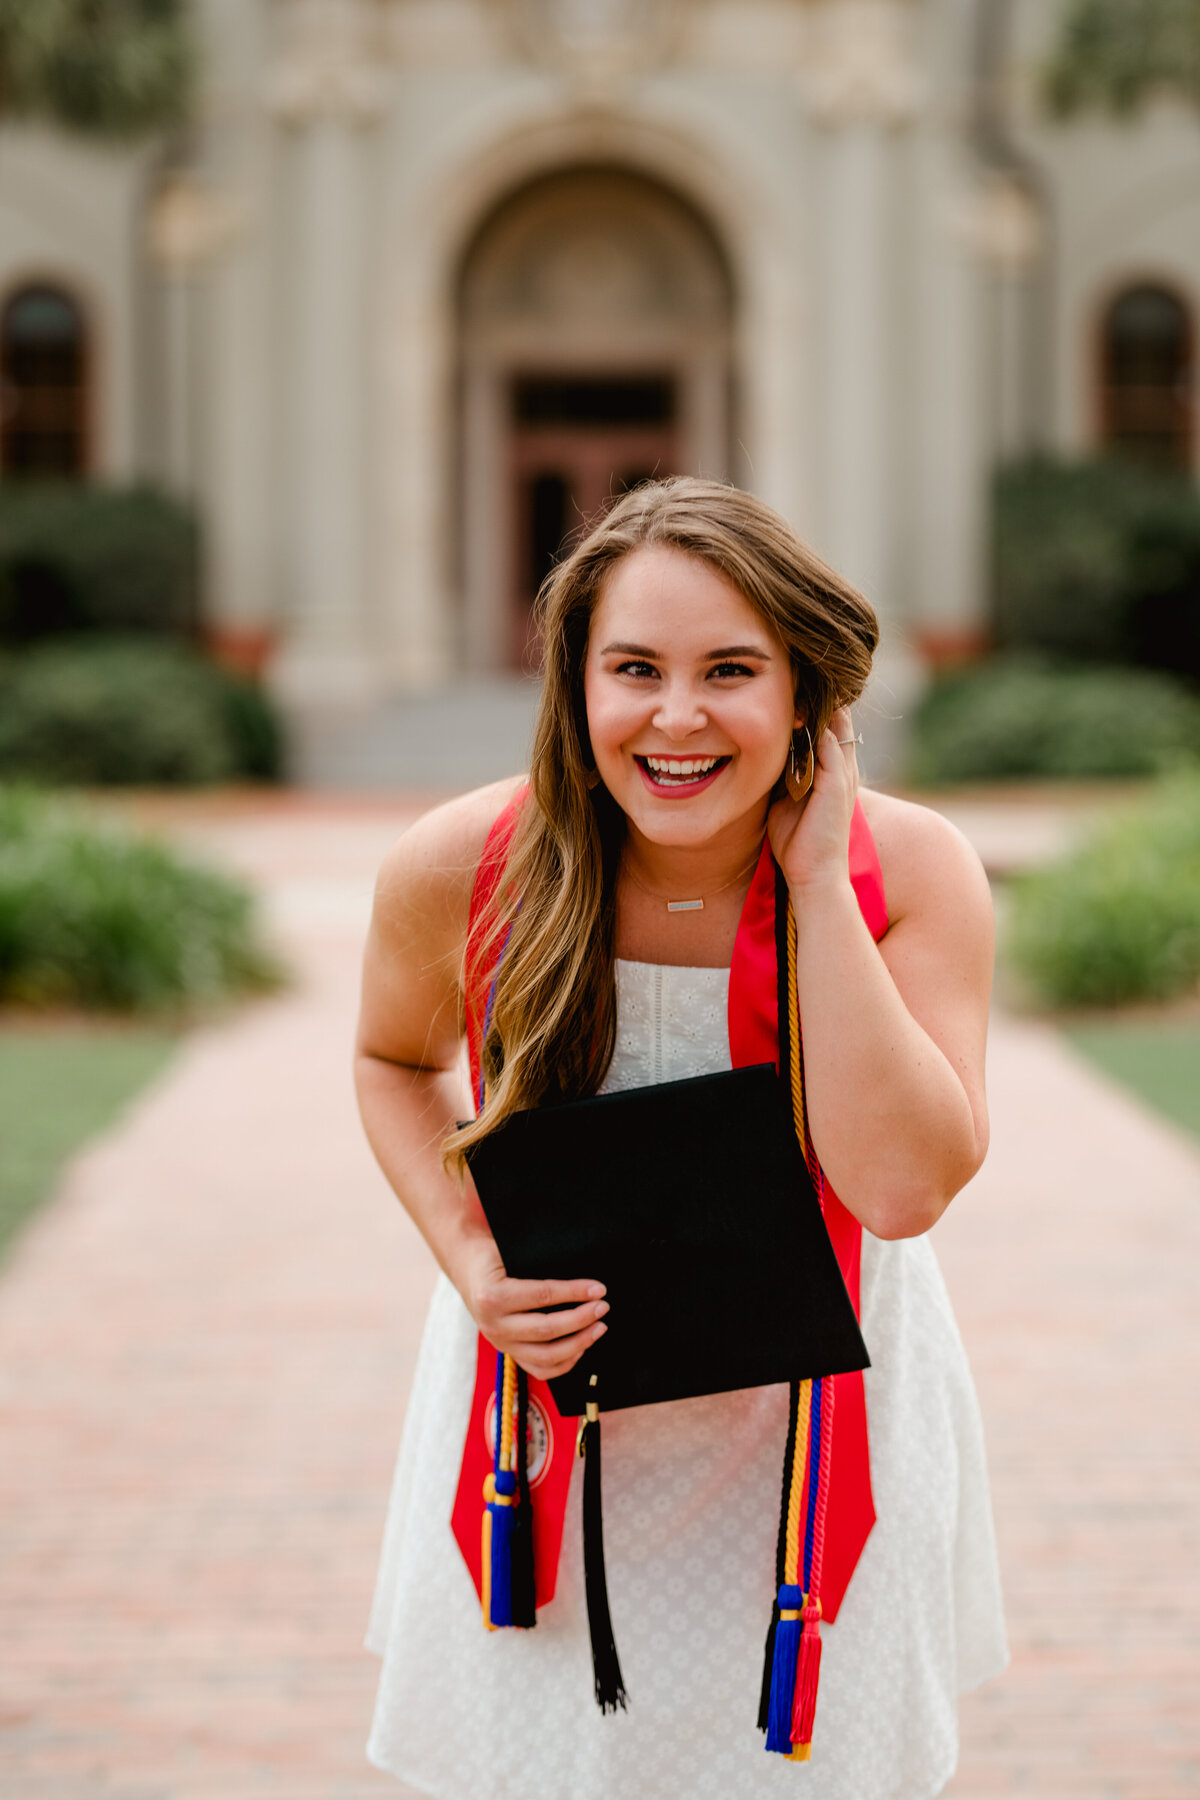 Valdosta State University cute grad photo ideas in Georgia